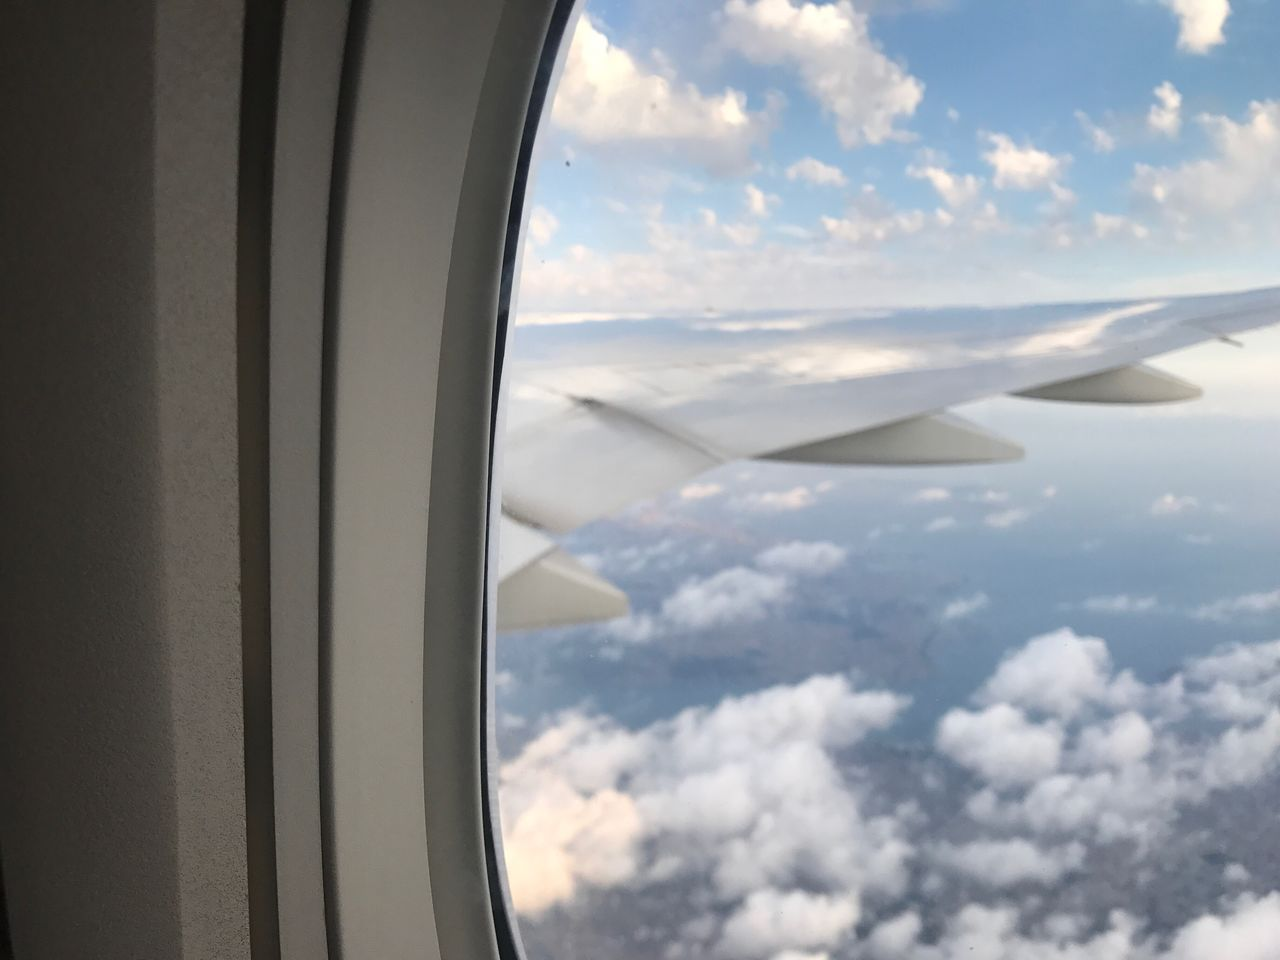 cloud - sky, journey, transportation, airplane, vehicle interior, sky, mode of transport, window, travel, air vehicle, aerial view, beauty in nature, nature, cloudscape, scenics, airplane wing, day, no people, tranquil scene, public transportation, flying, landscape, close-up, outdoors